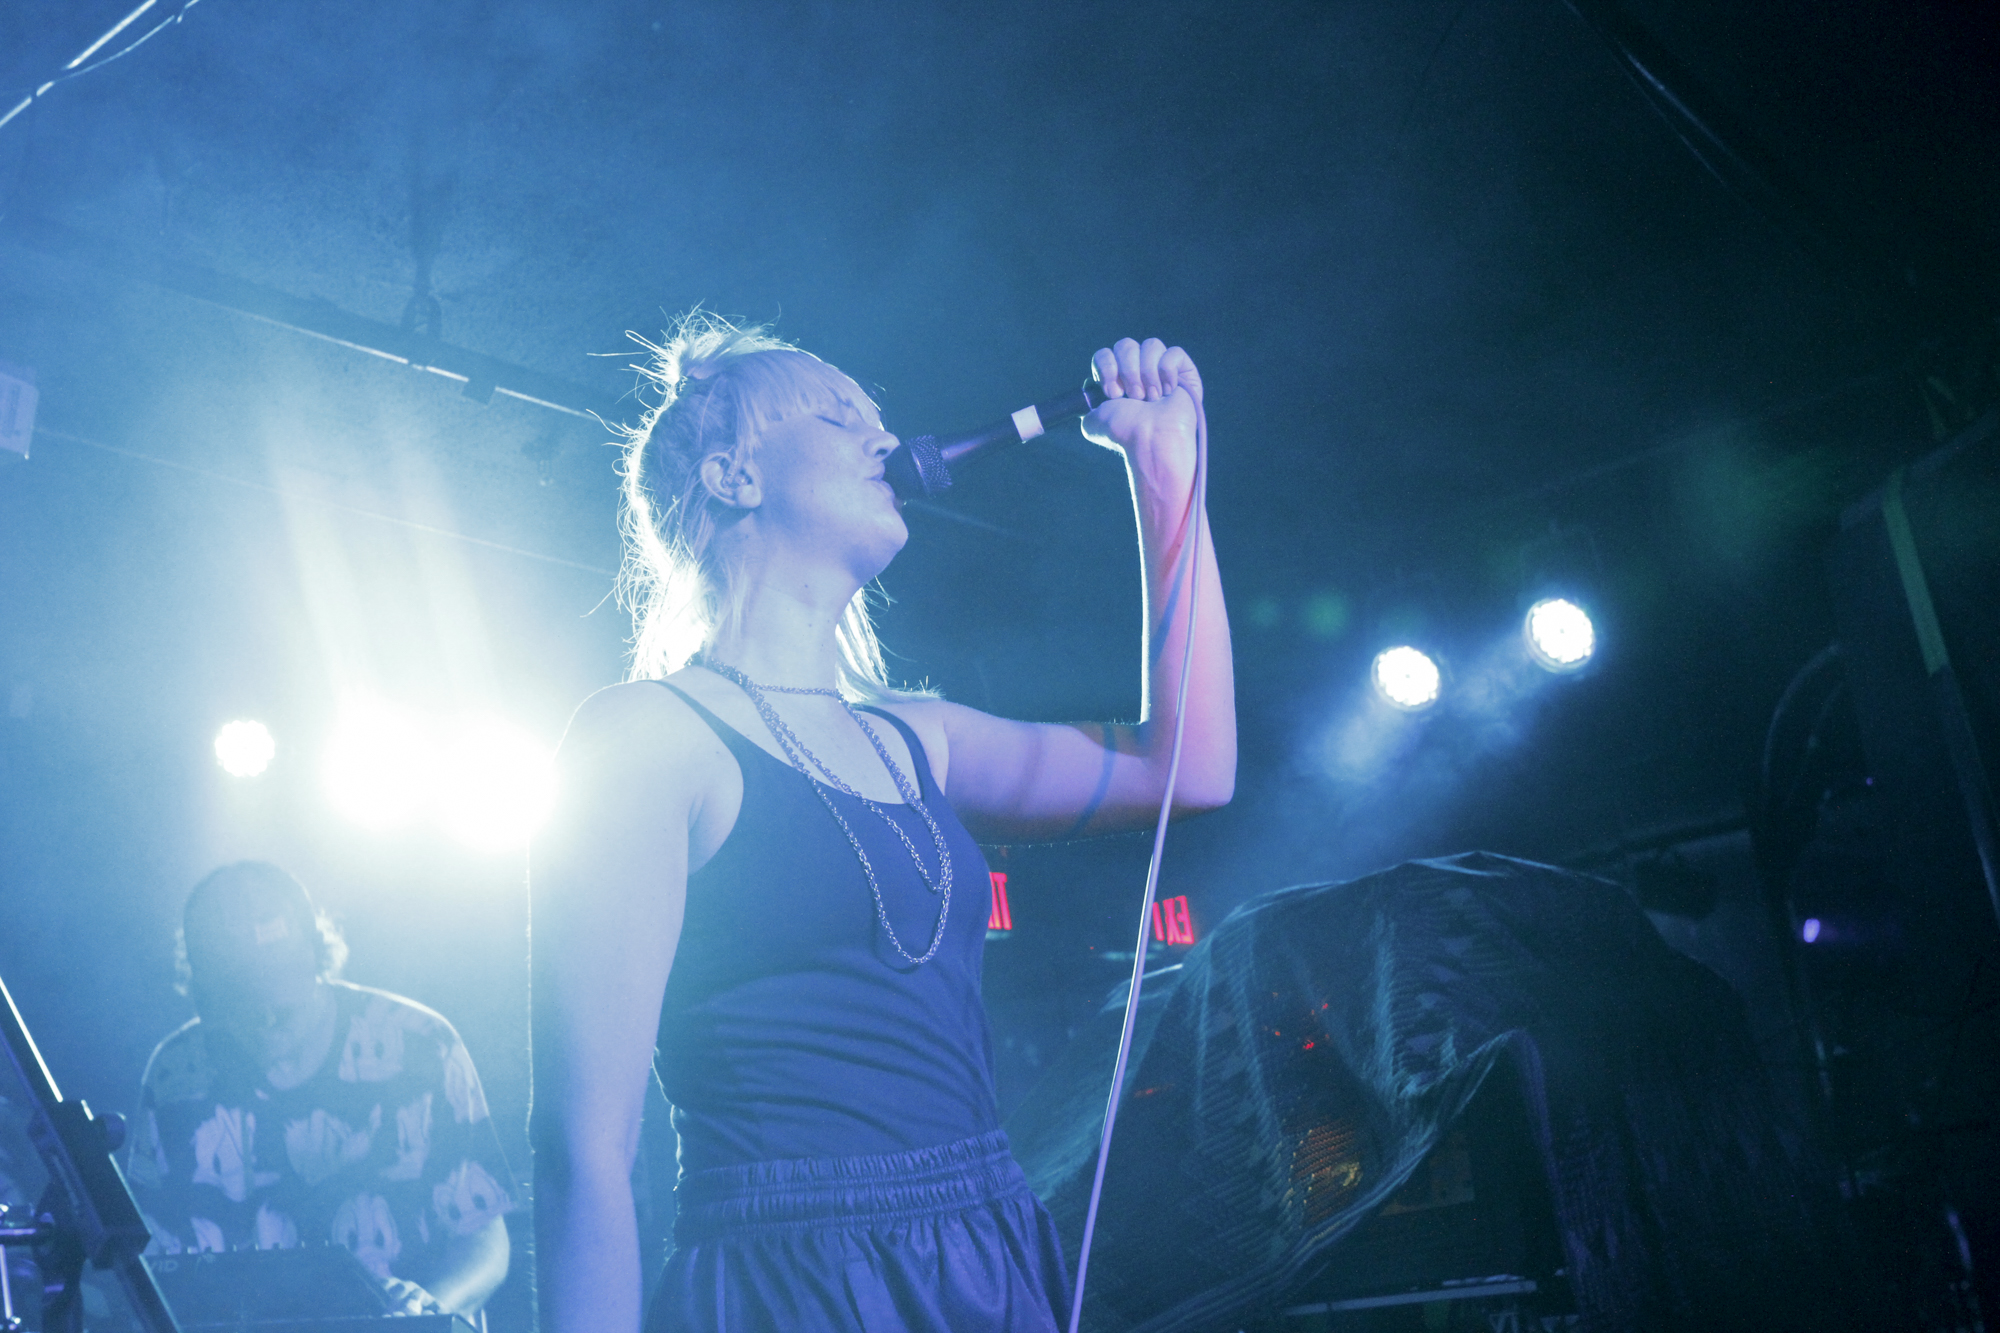 EMA plays at Brooklyn Bazaar in Greenpoint, Brooklyn, New York on Nov. 10, 2017. (© Michael Katzif - Do not use or republish without prior consent.)